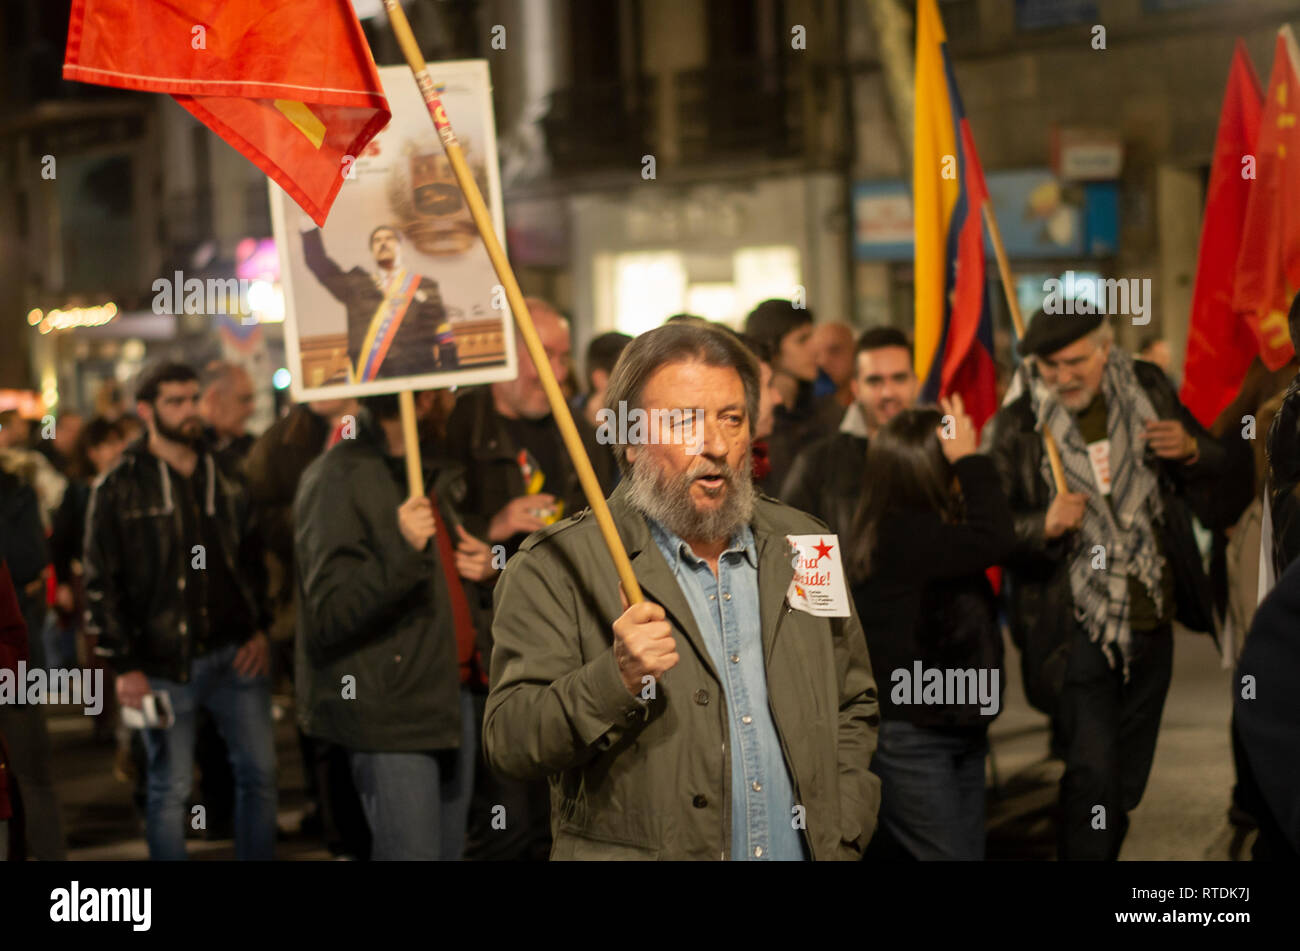 Protesters are seen holding flags during the protest. Hundreds of people protest against the intervention of United States in Venezuela marching from Atocha to Puerta del Sol in Madrid. Stock Photo